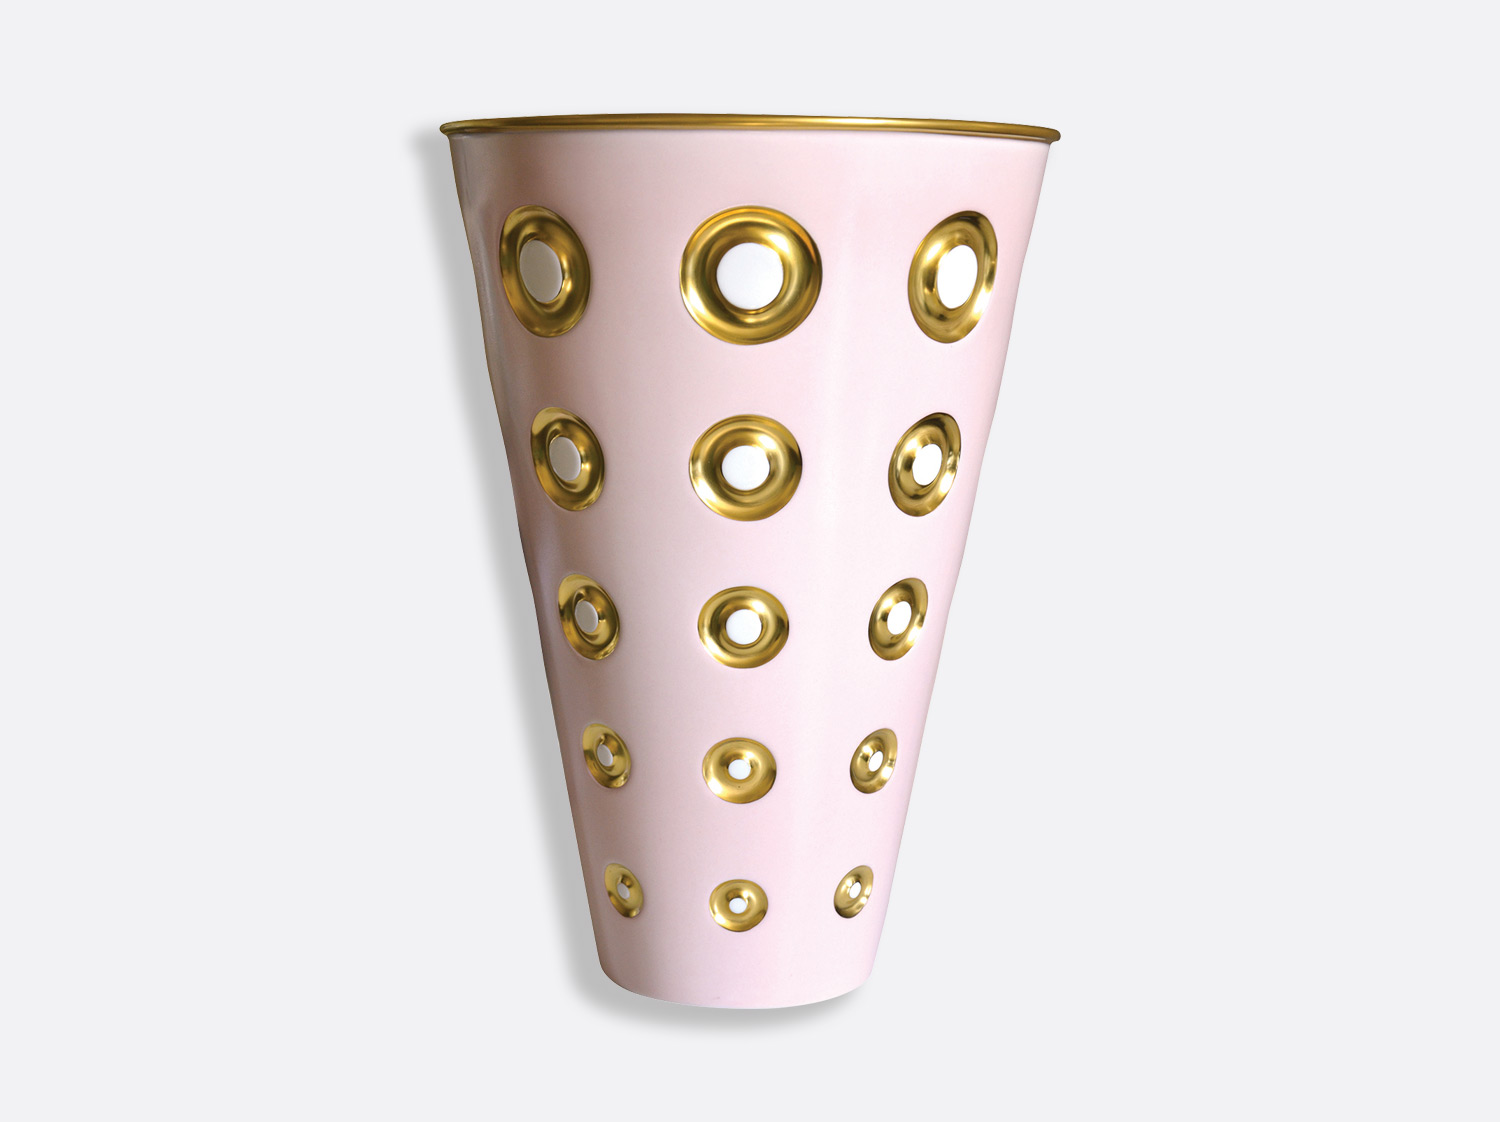 China Vase H. 37,5 cm of the collection Panarea rose | Bernardaud